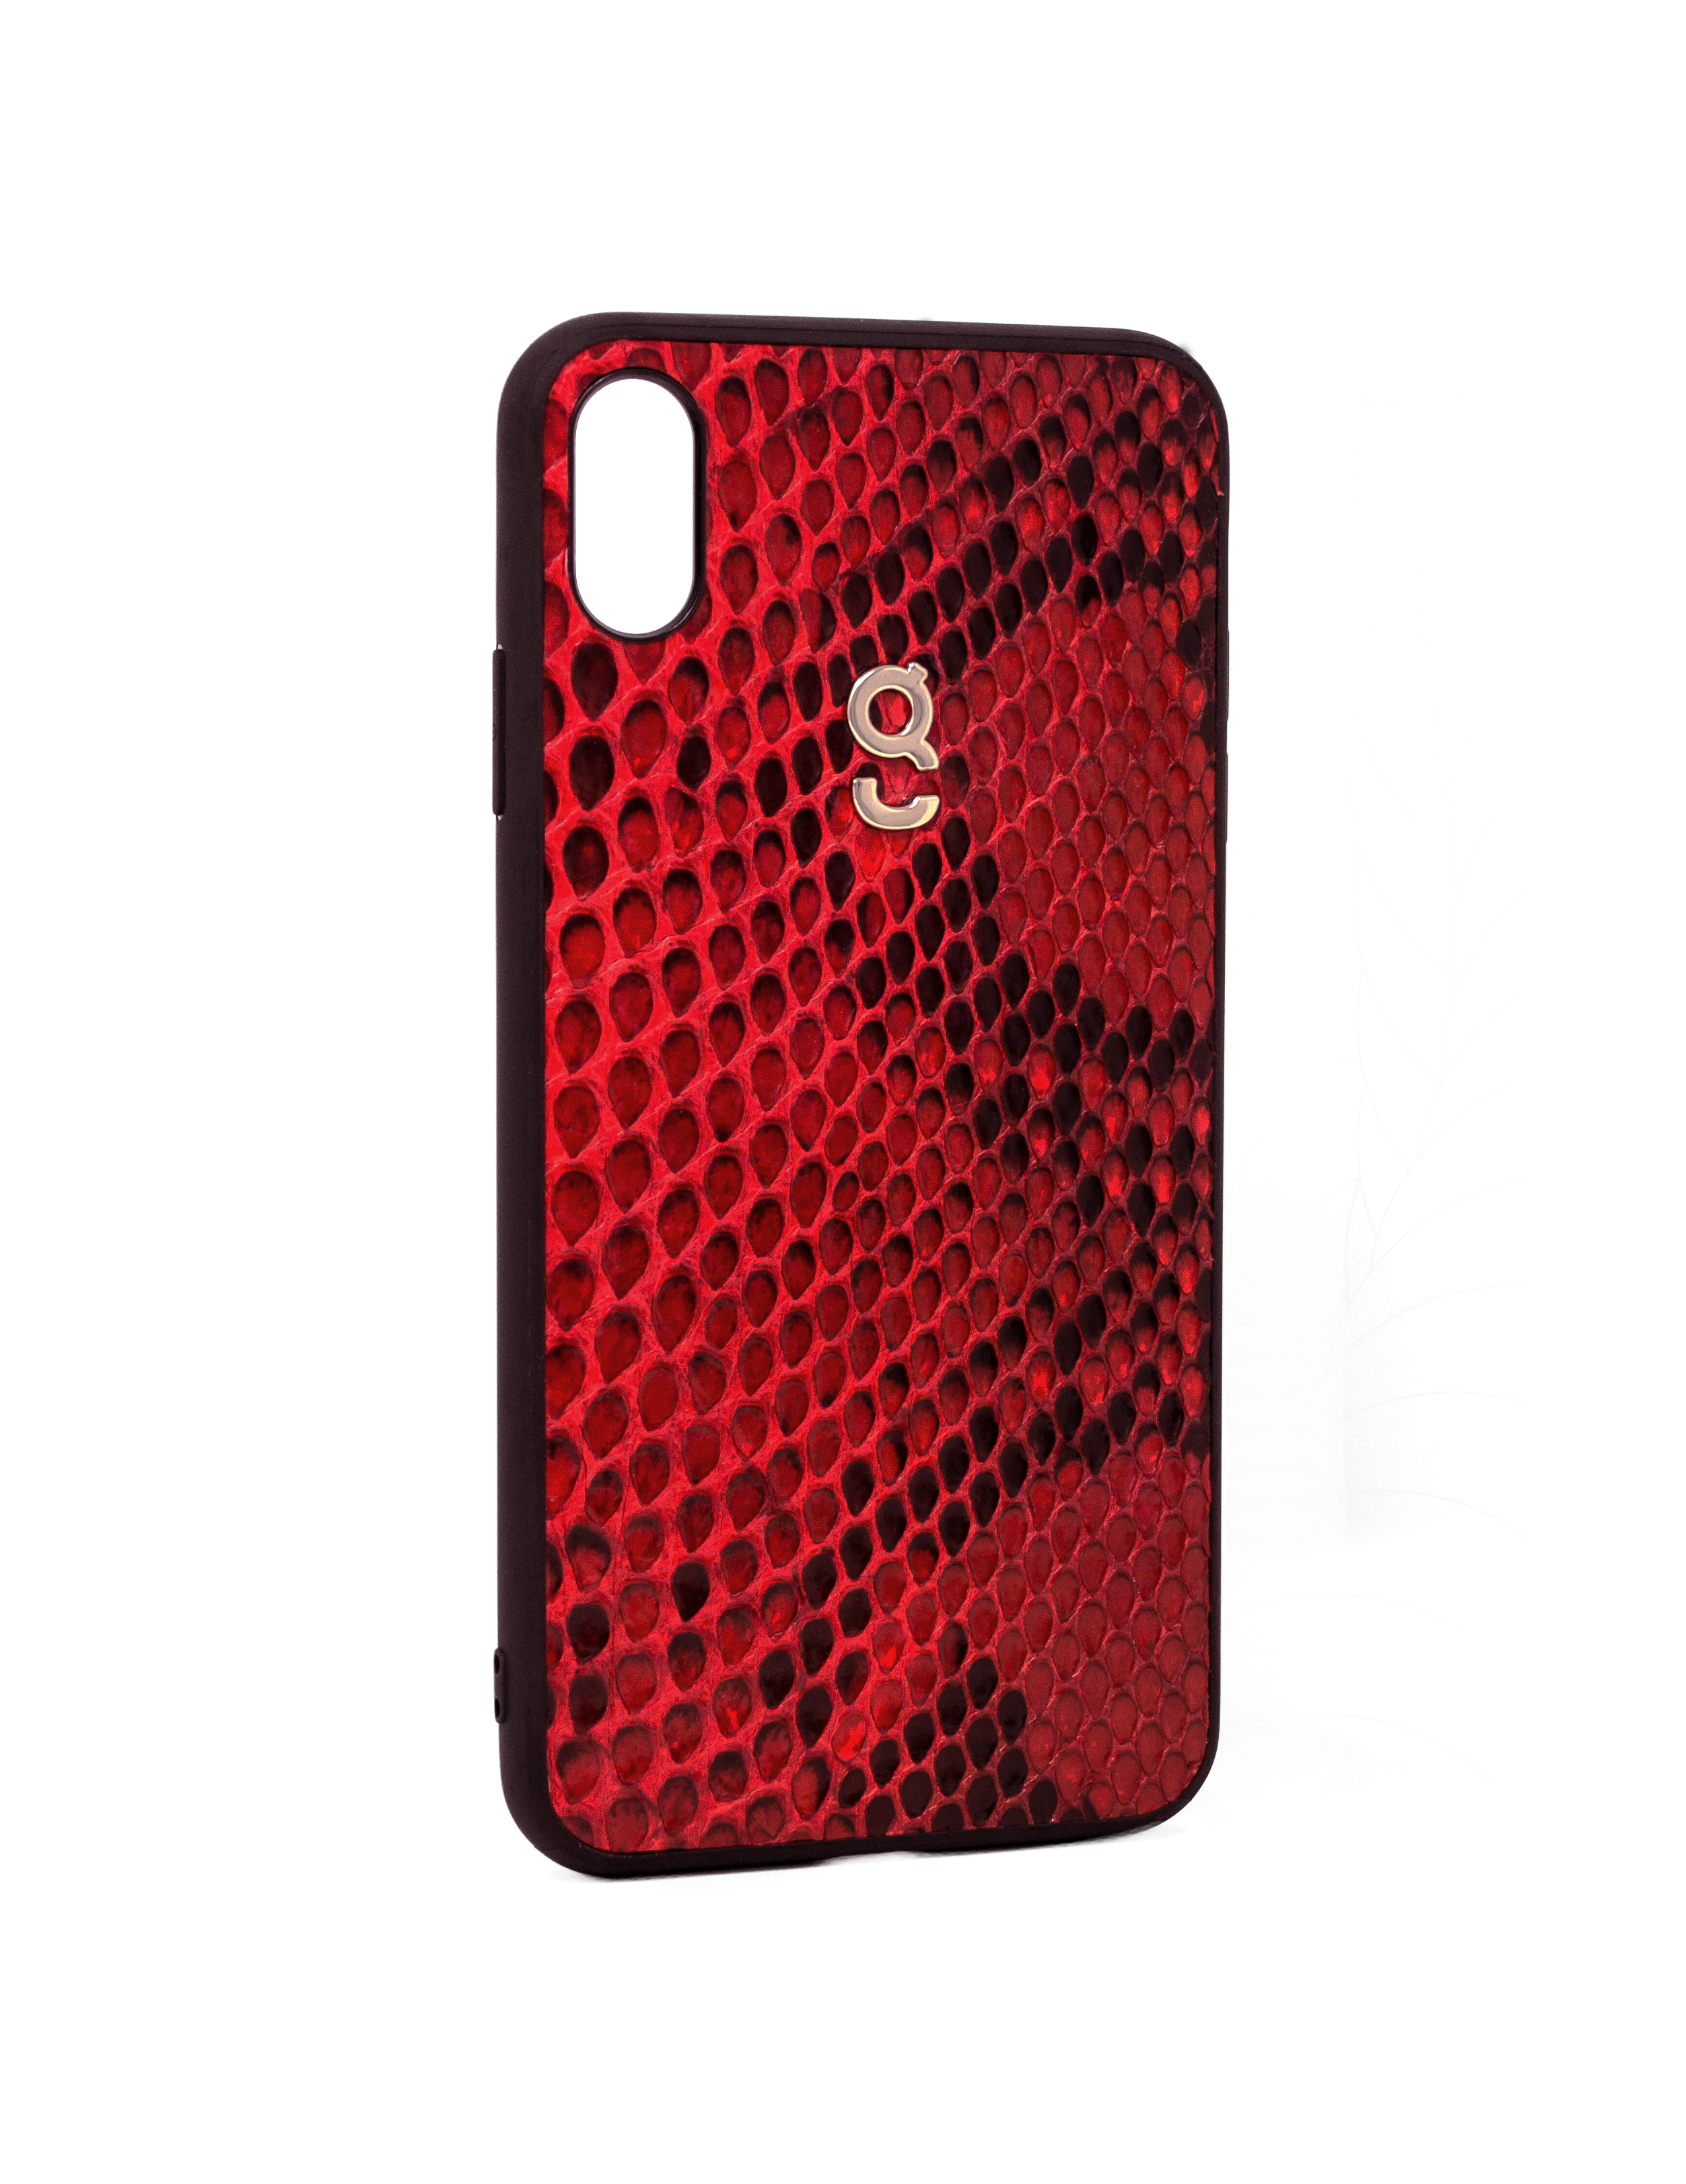 Rosso corsa python - iPhone XS Max case - gcoulee